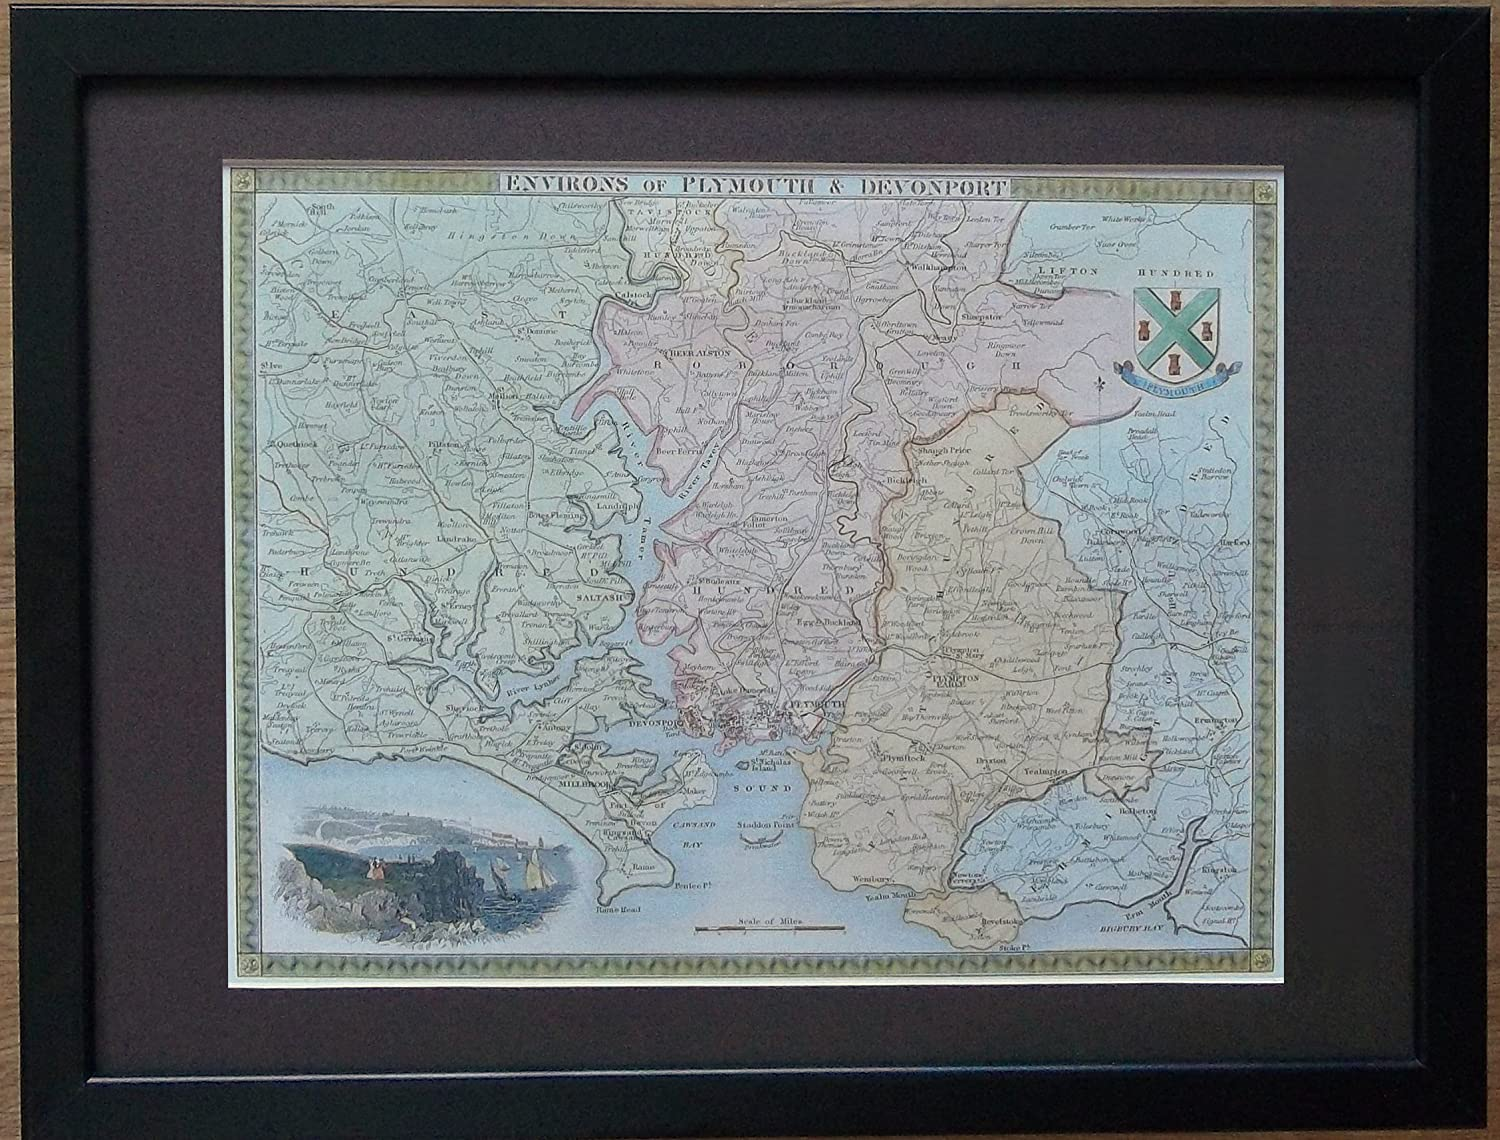 Framed and Mounted Plymouth Map - 12'' x 16'' frame, Old Plymouth and Devonport Map framed print